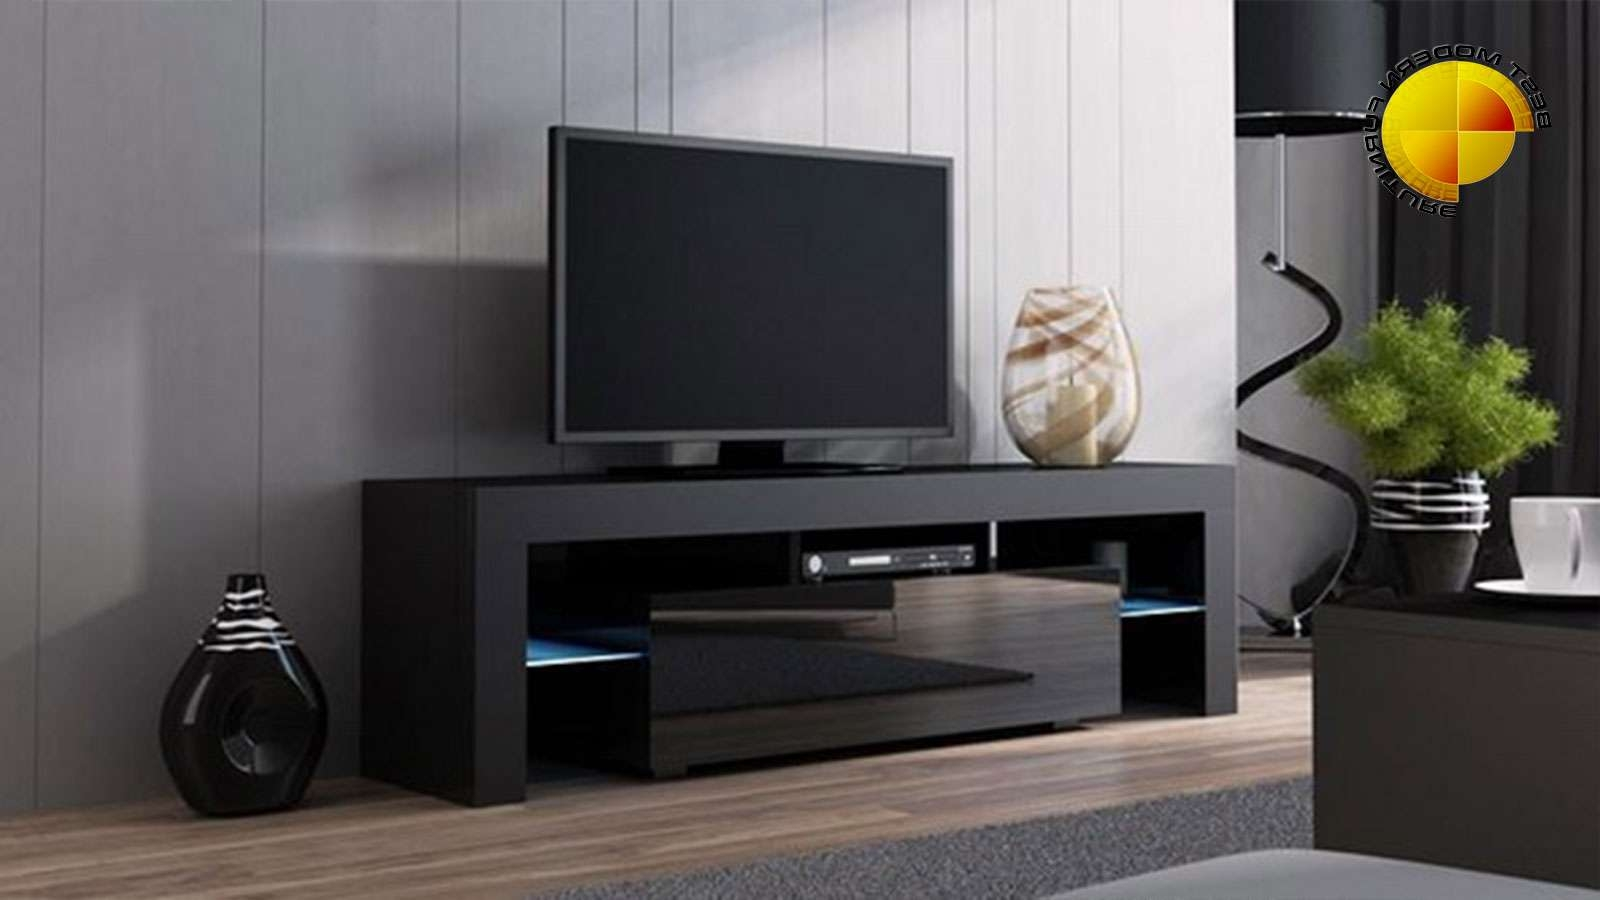 Modern Tv Stand 160Cm High Gloss Cabinet Rgb Led Lights Black Unit Pertaining To Tv Stands With Led Lights (View 8 of 15)